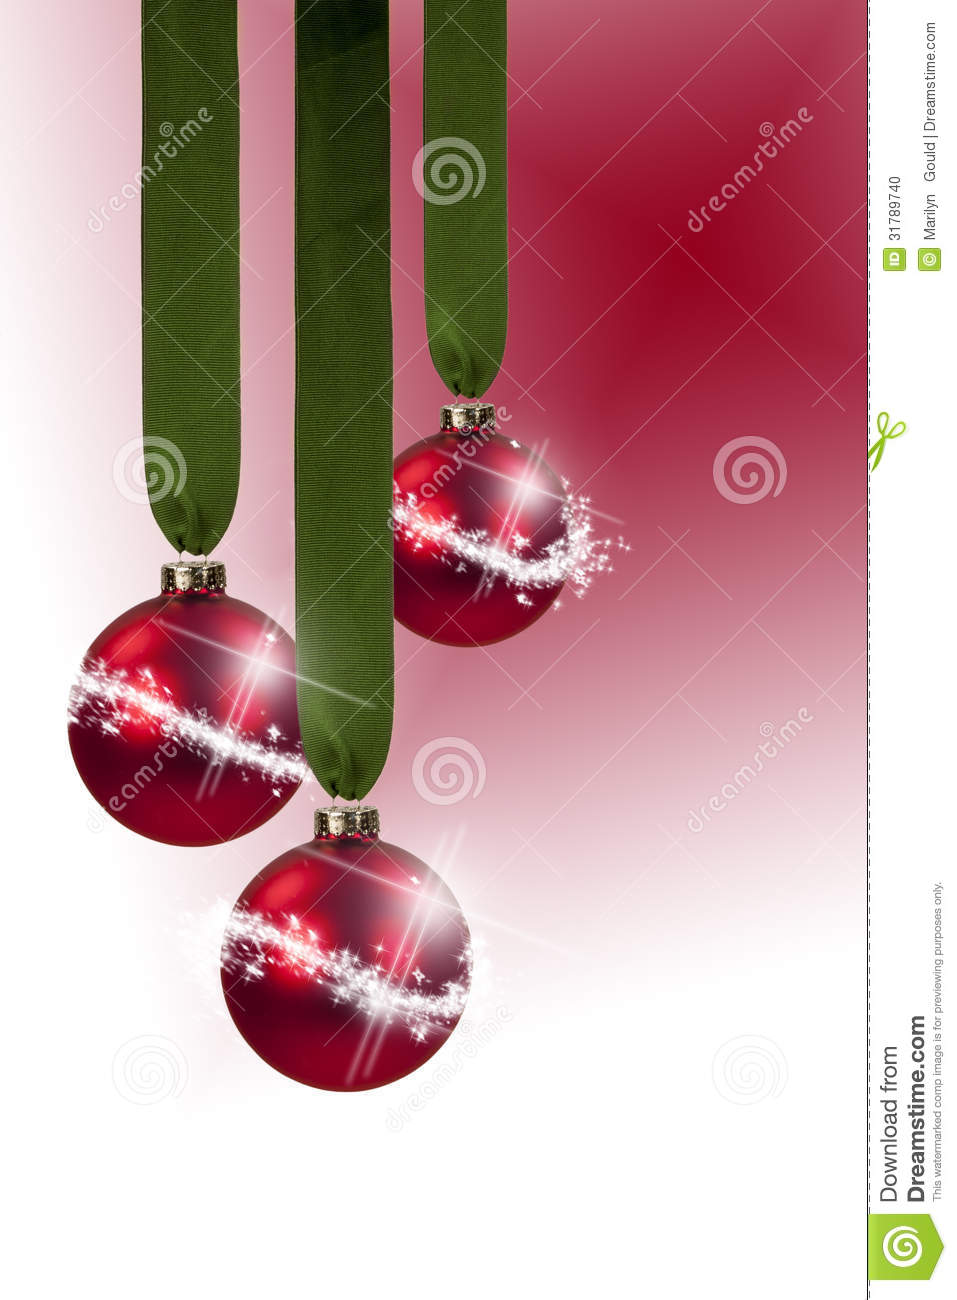 red ornament green ribbon stock photo  image of